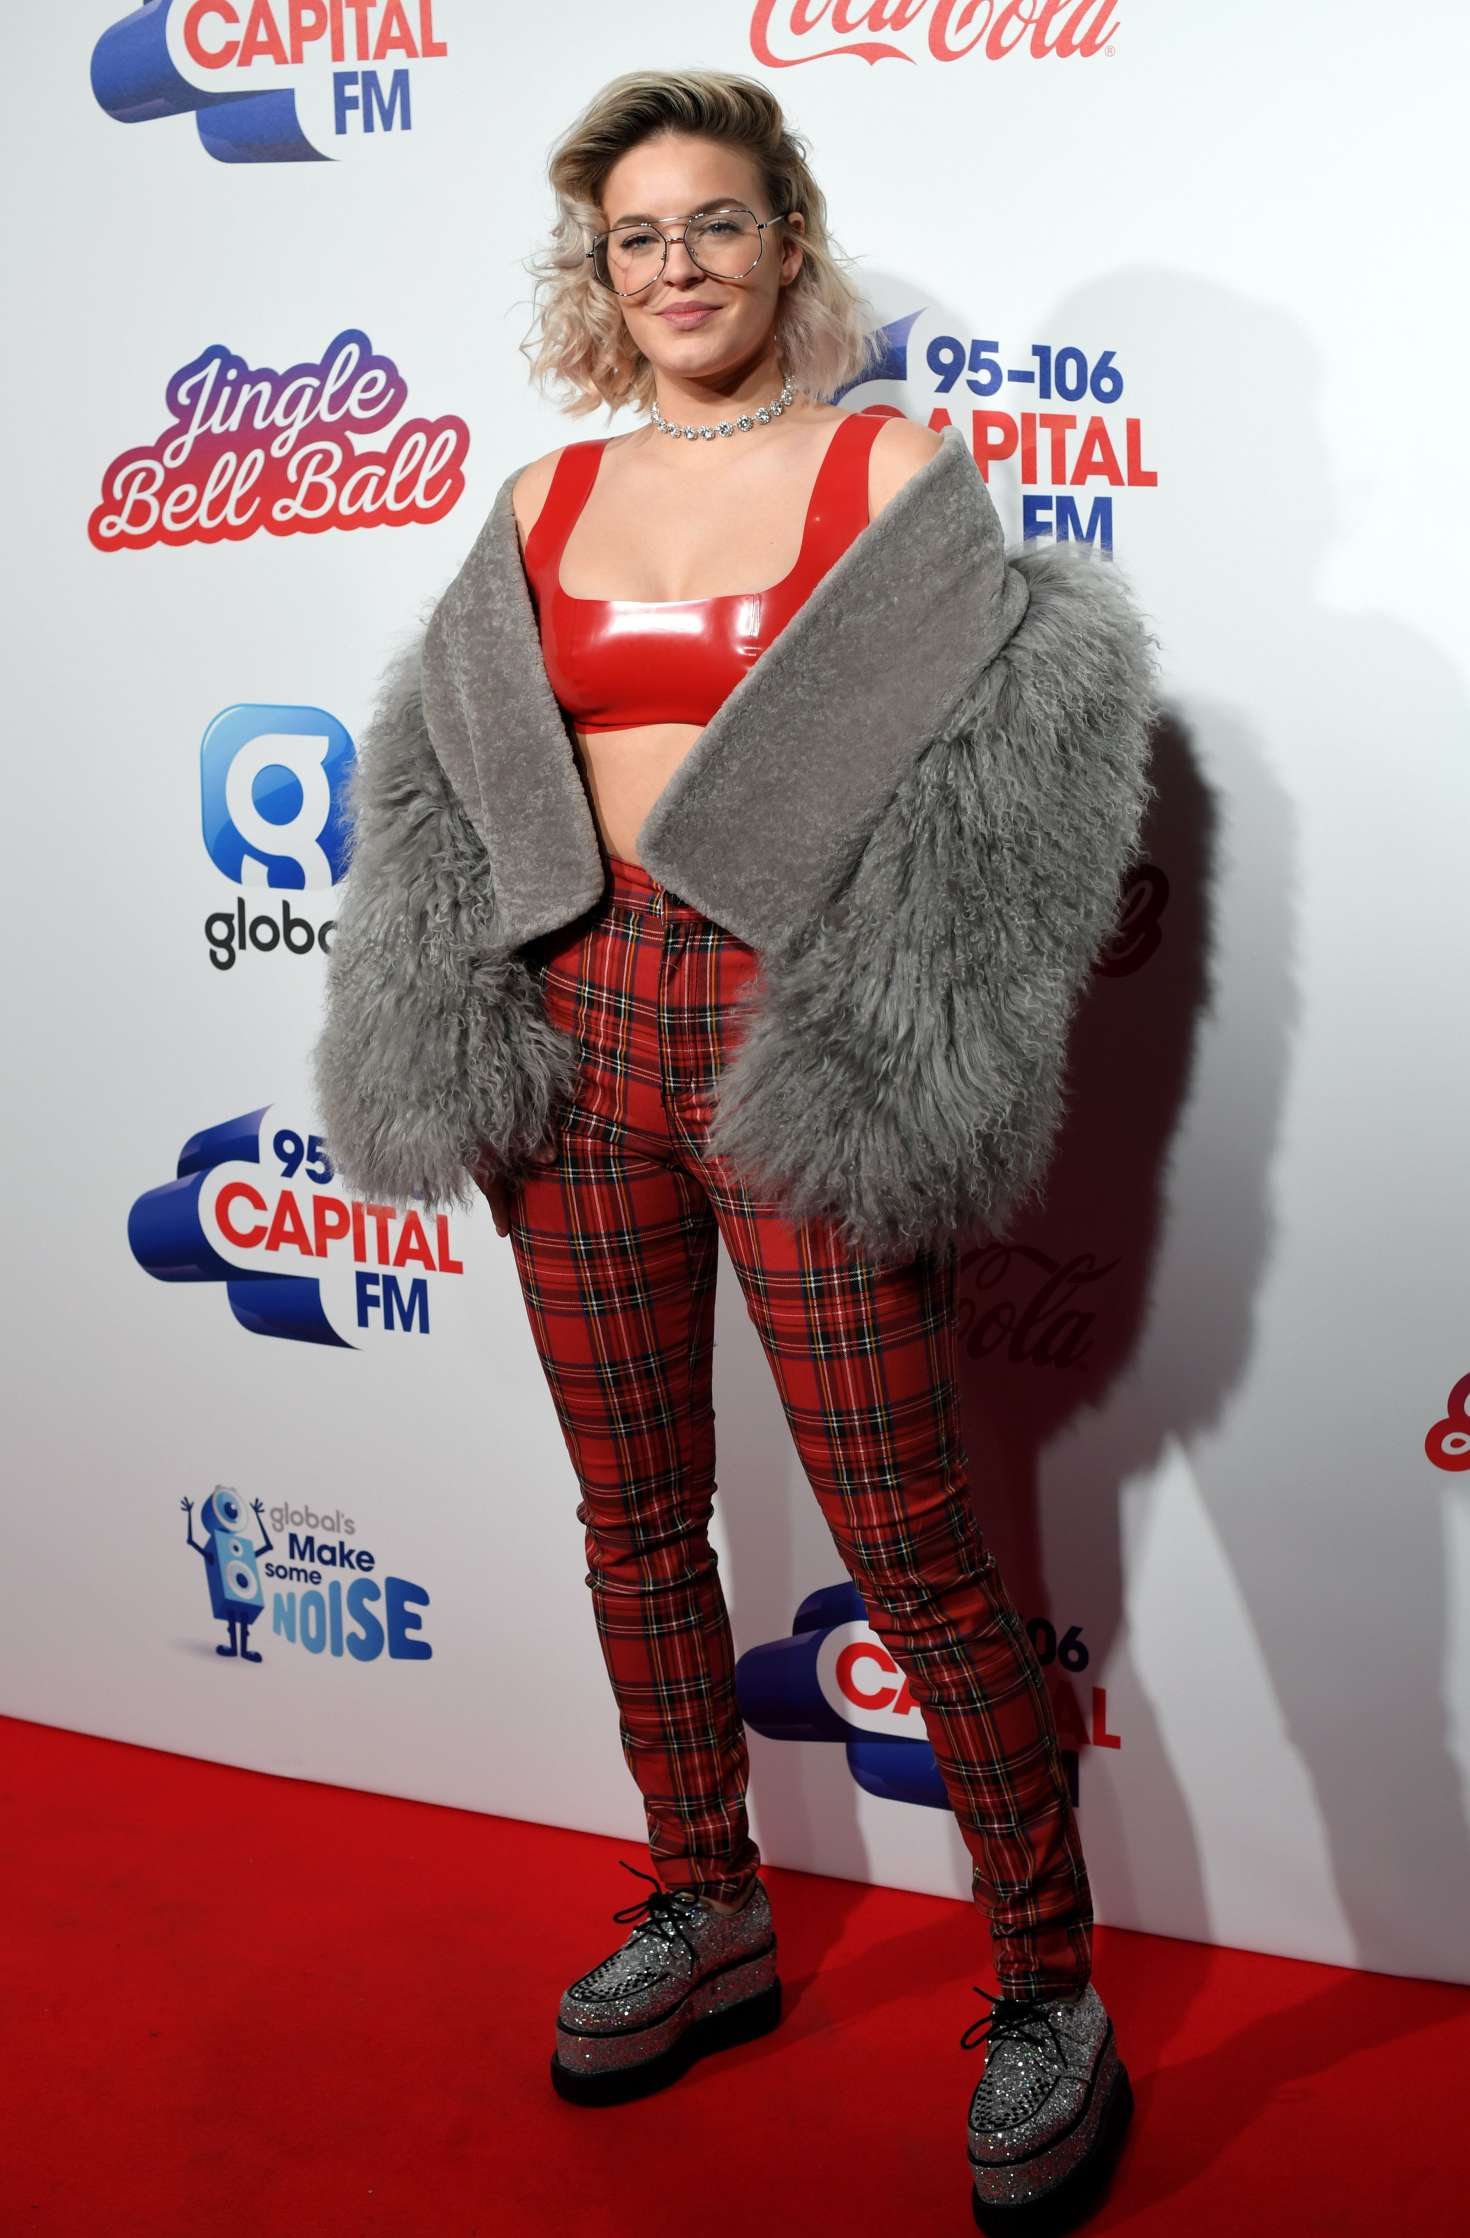 Anne Marie Capitals Jingle Bell Ball 2016 With Coca Cola In London Celebs By Lianxio